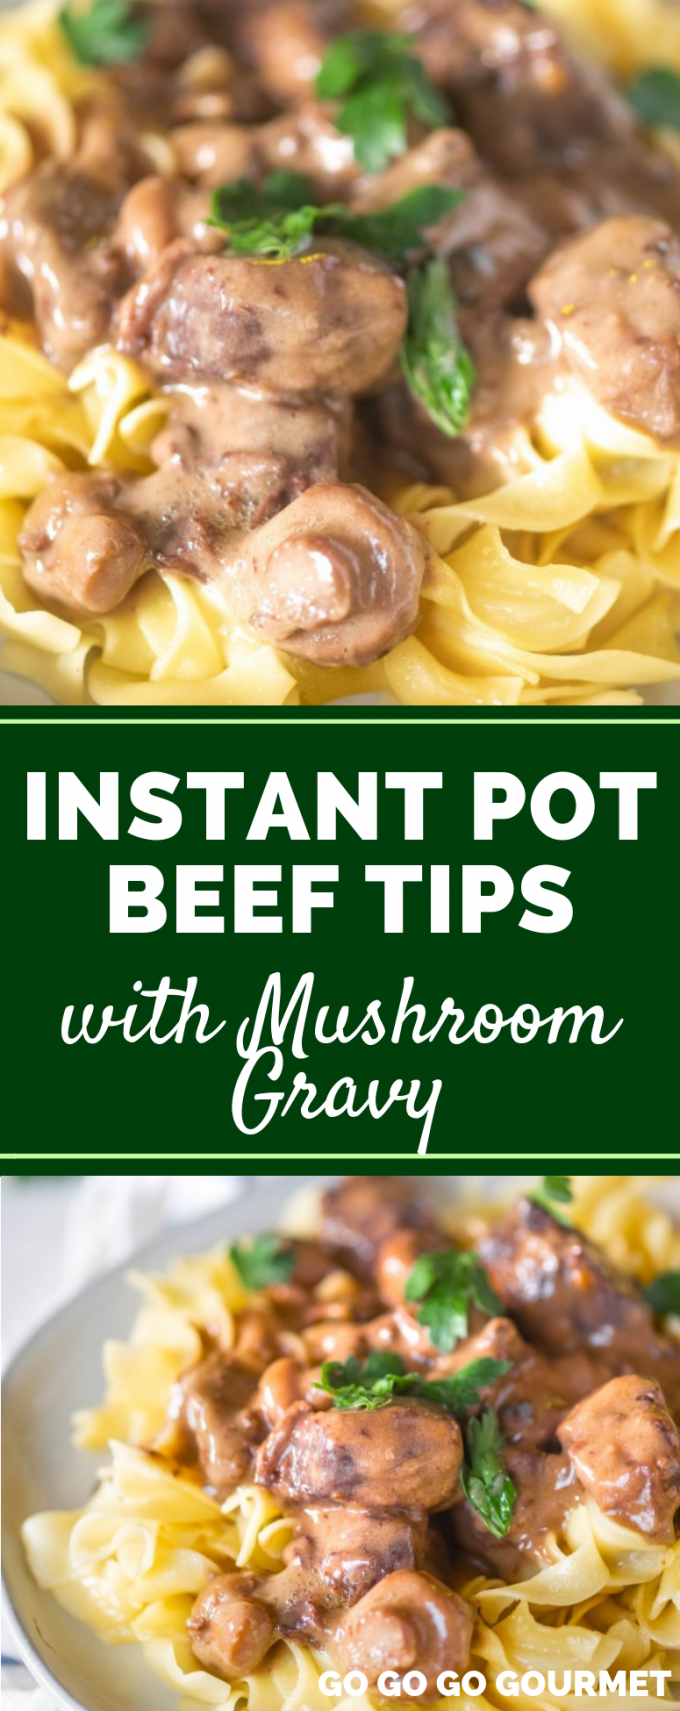 This easy Instant Pot Beef Tips recipe is swimming in delicious mushrooms and gravy! While it's not healthy or Whole 30 compliant, it is a comfort food that the whole family will enjoy! Best served over rice, noodles or mashed potatoes. #gogogogourmet #instantpotbeeftips #easyinstantpotrecipes #comfortfoodrecipes via @gogogogourmet